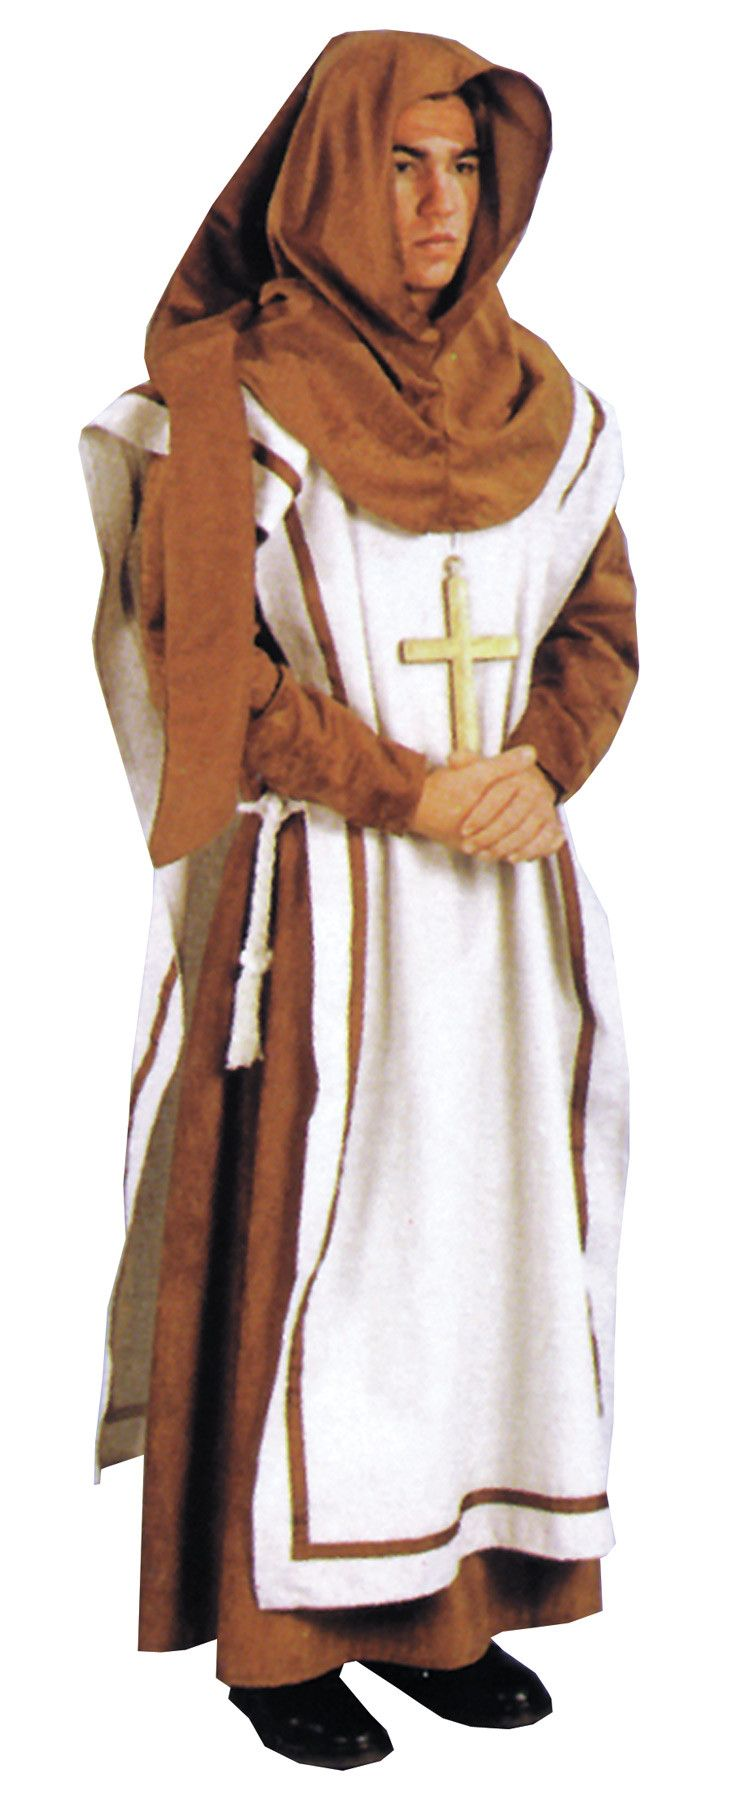 Renaissance monk is just your style! This costume features a brown robe and hood with an off-white colored tunic. The tunic is trimmed with brown ribbon; and, a rope belt is included. The costume fits